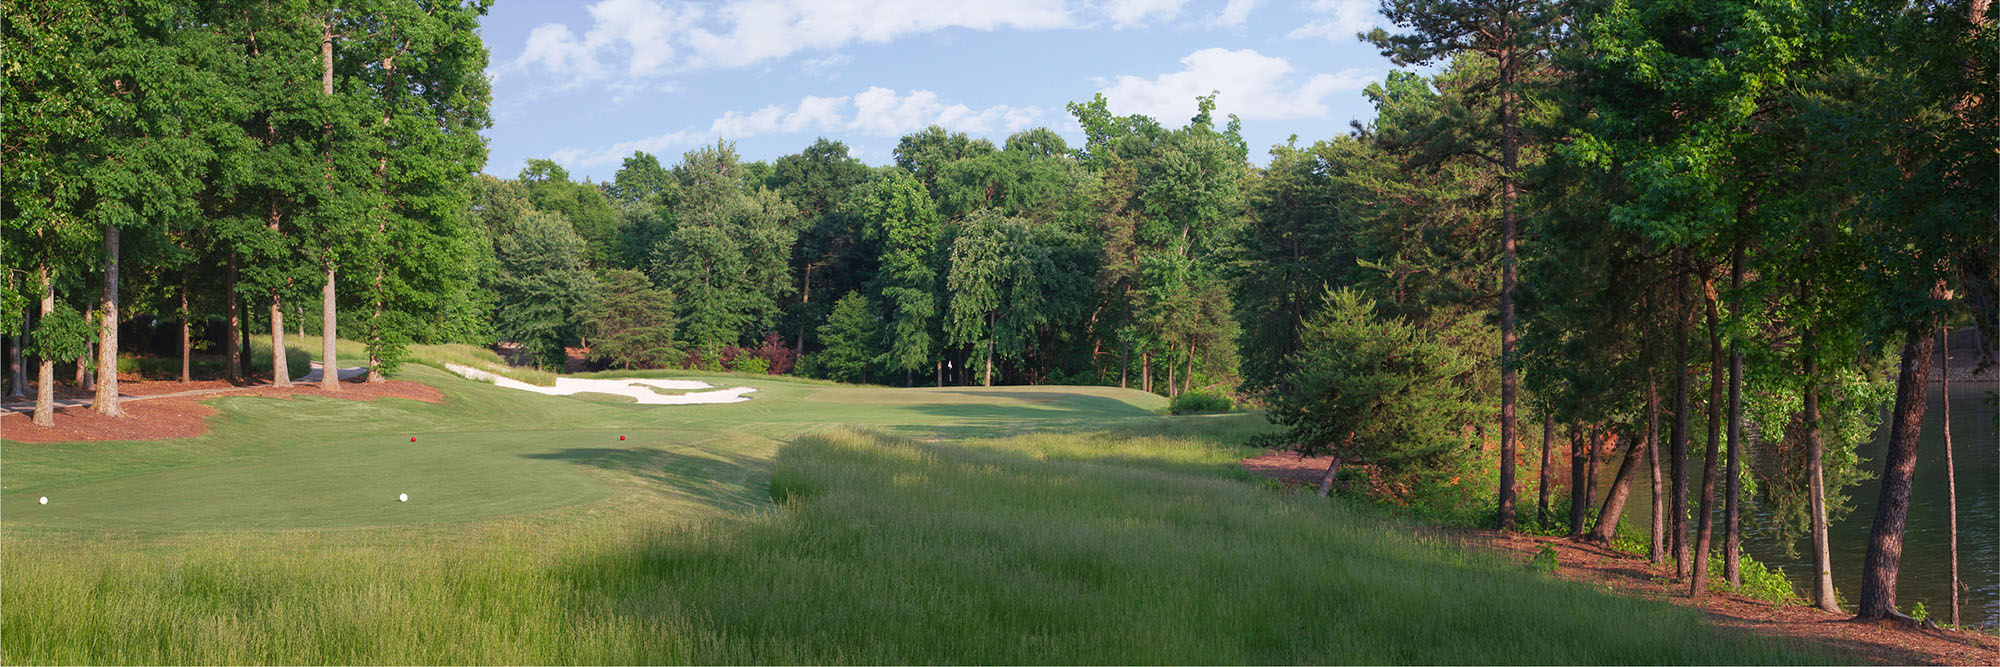 Golf Course Image - Trump National Charlotte No. 13